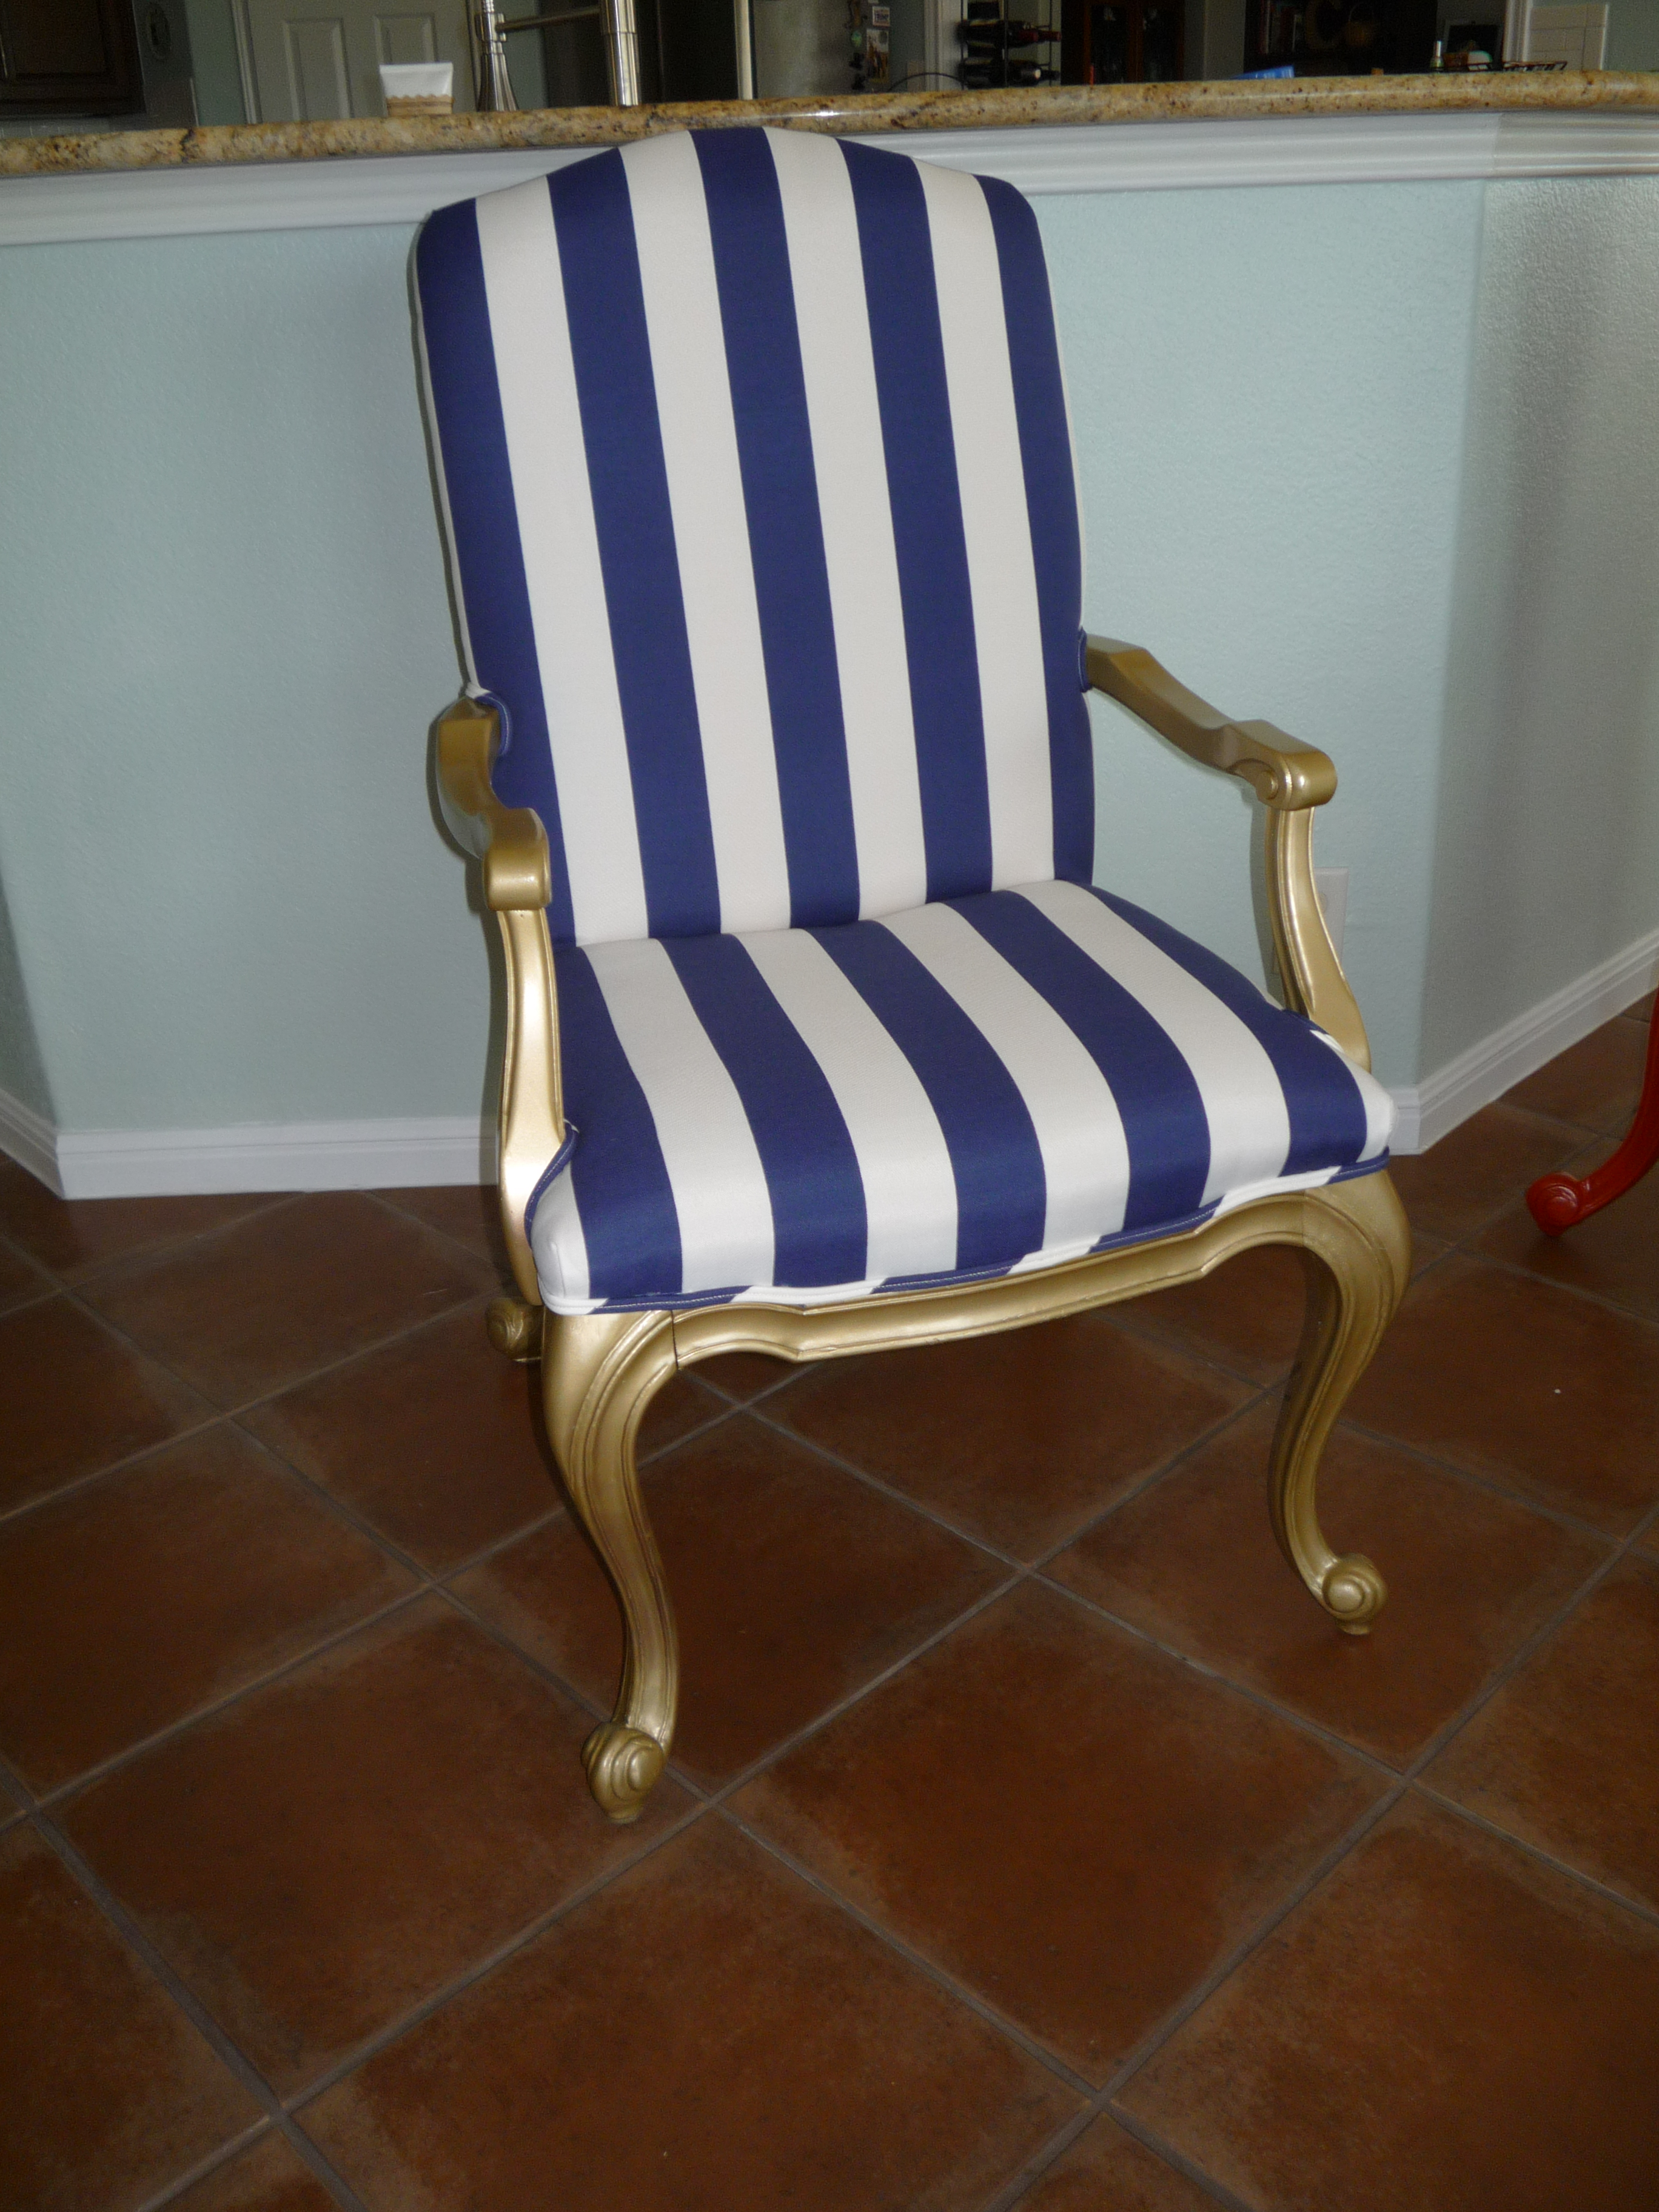 Gold And Royal Blue Combine To Make This Striking Chair Purely Regal!  Freshly Enameled And